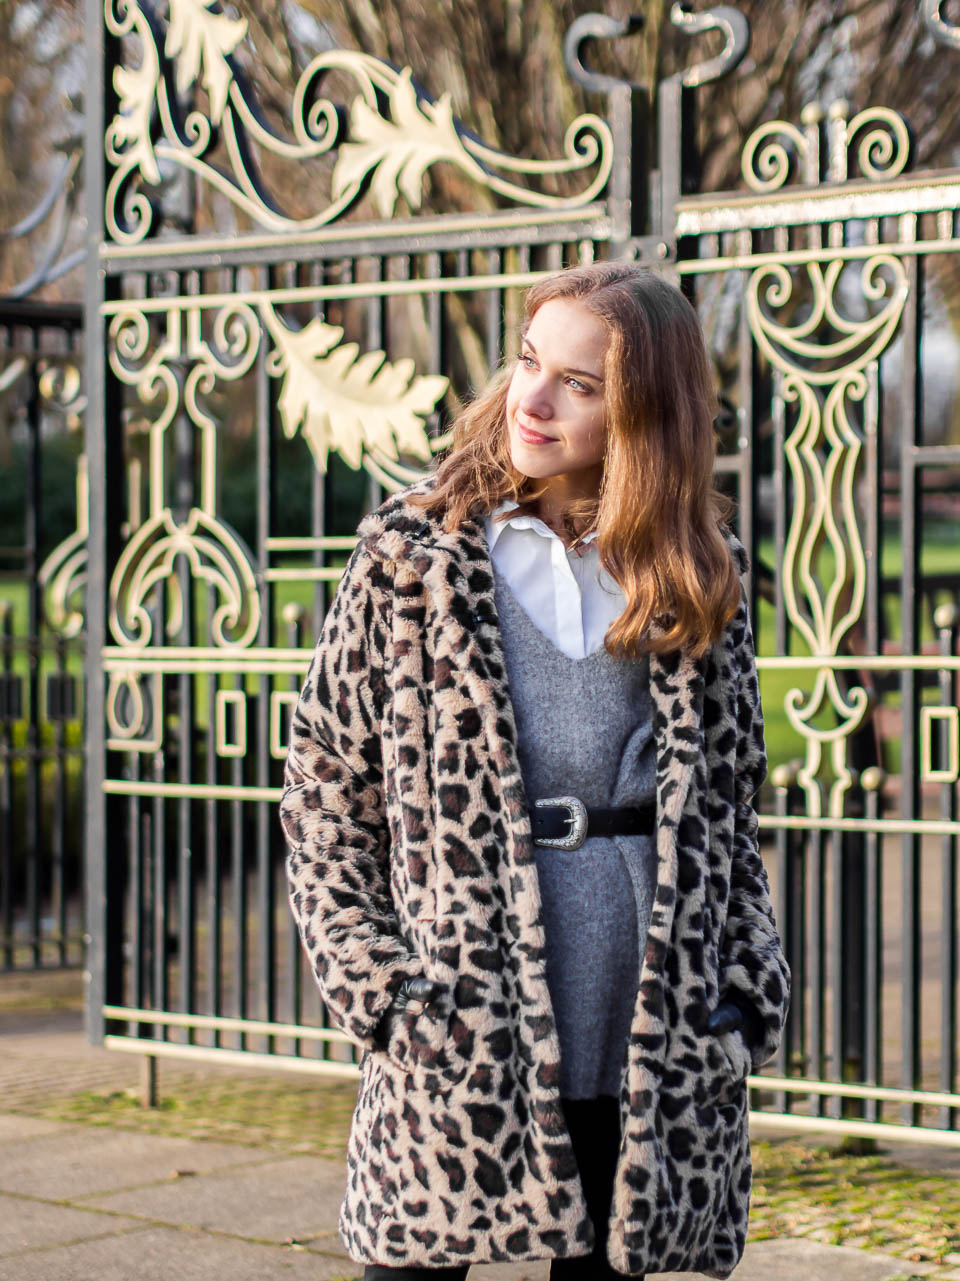 fashion-blogger-winter-outfit-inspiration-leopard-coat-trend